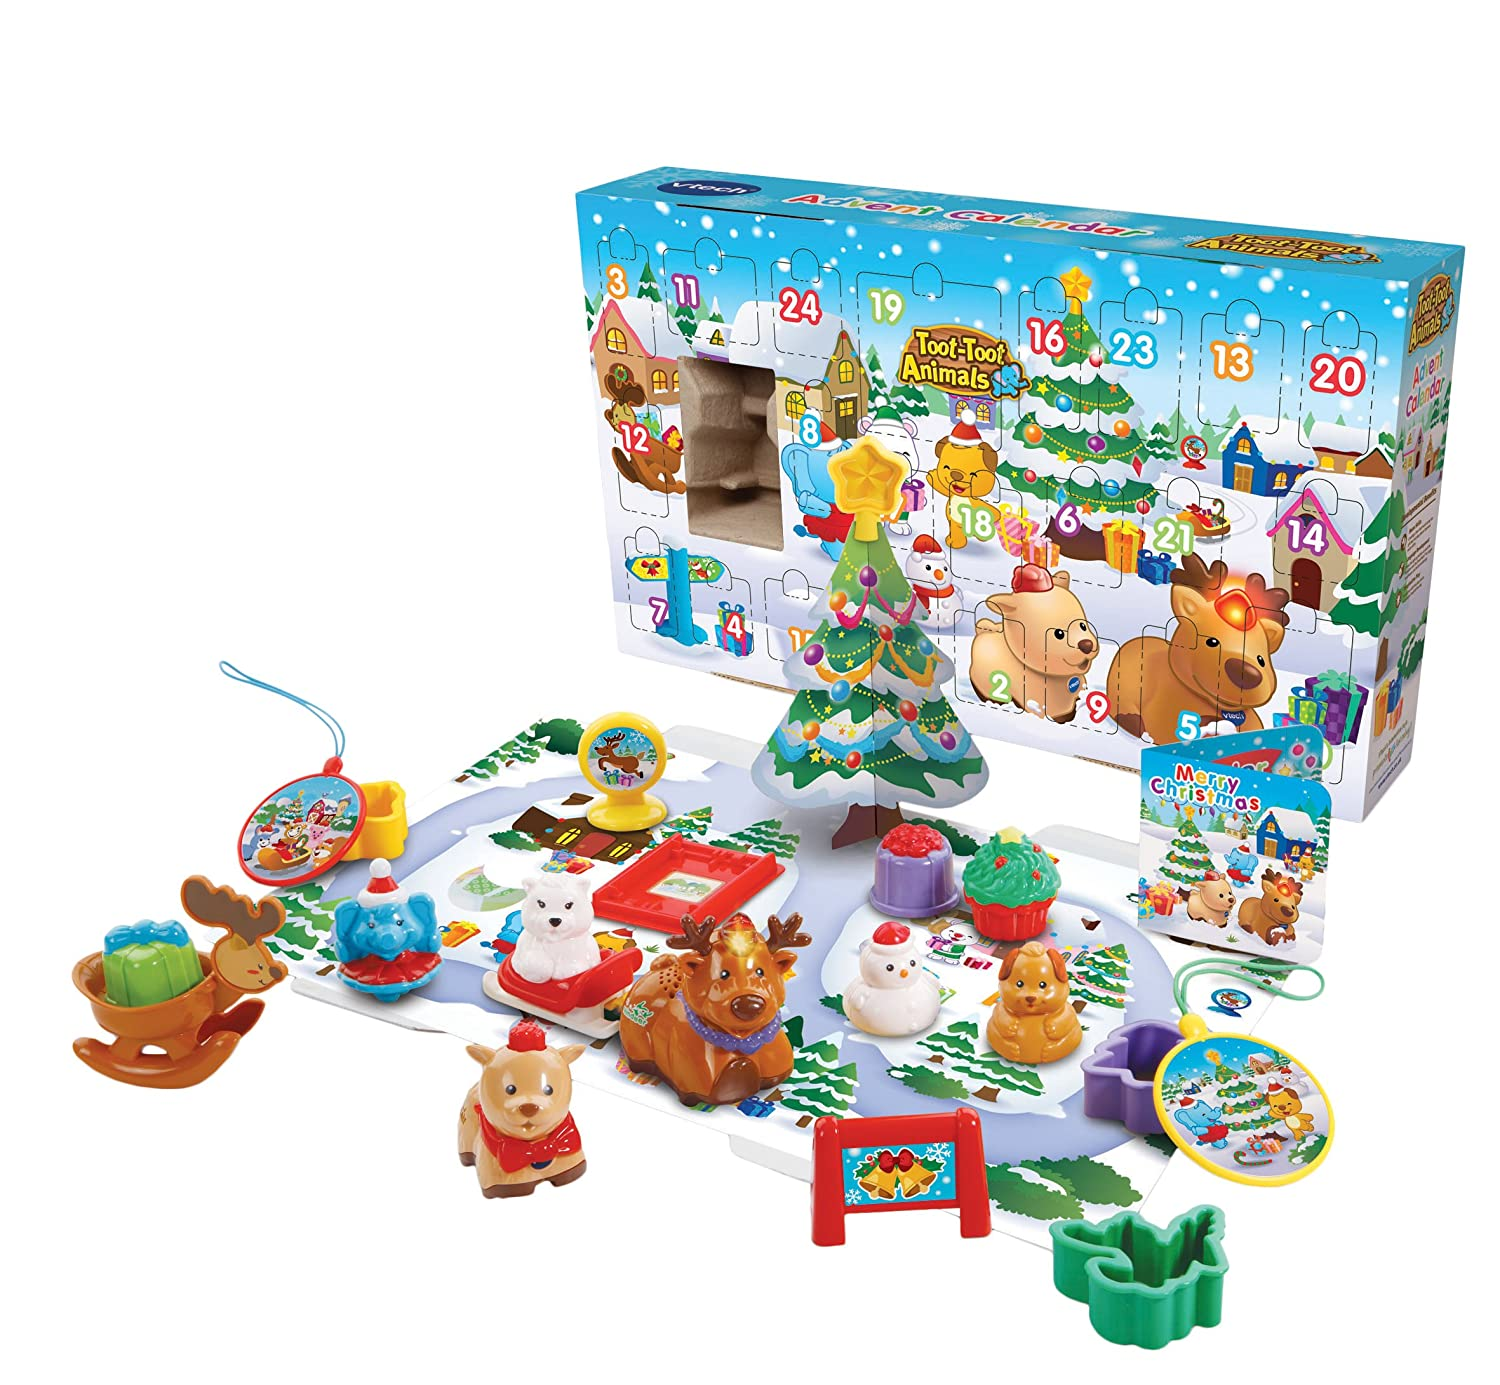 VTech Toot-Toot Animals Advent Calendar (Dispatched From UK) 192903